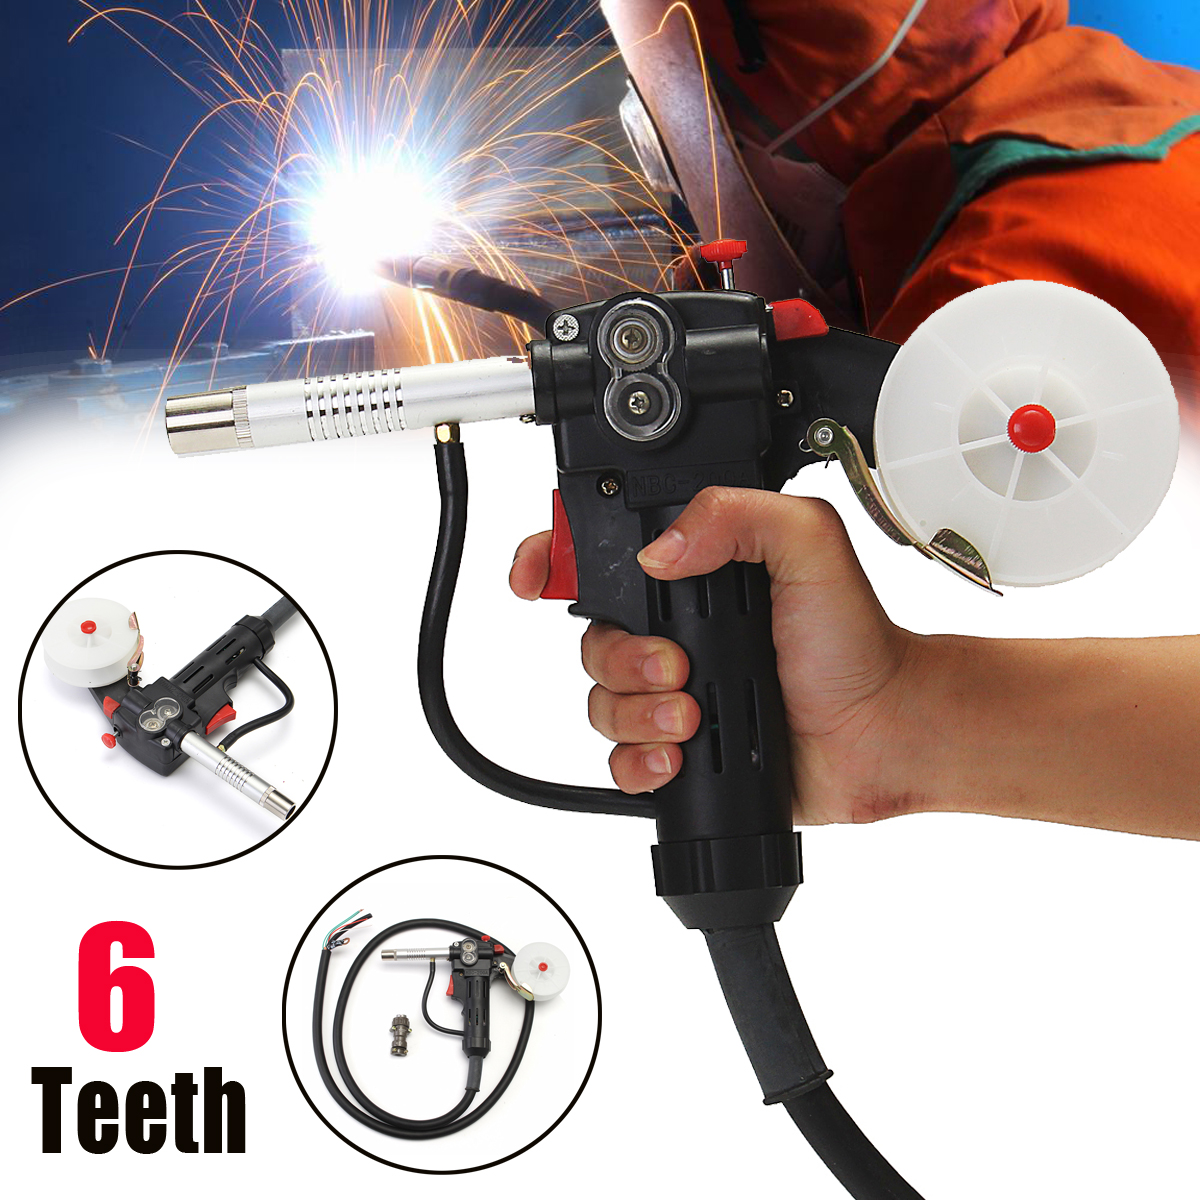 6 Feet MIG Welding Spool Gun Push Pull Feeder Aluminum Steel Welding Torch +2m Wire Cable spool gun gas shielded welding gun lead push pull aluminum torch with cable for high altitude operation